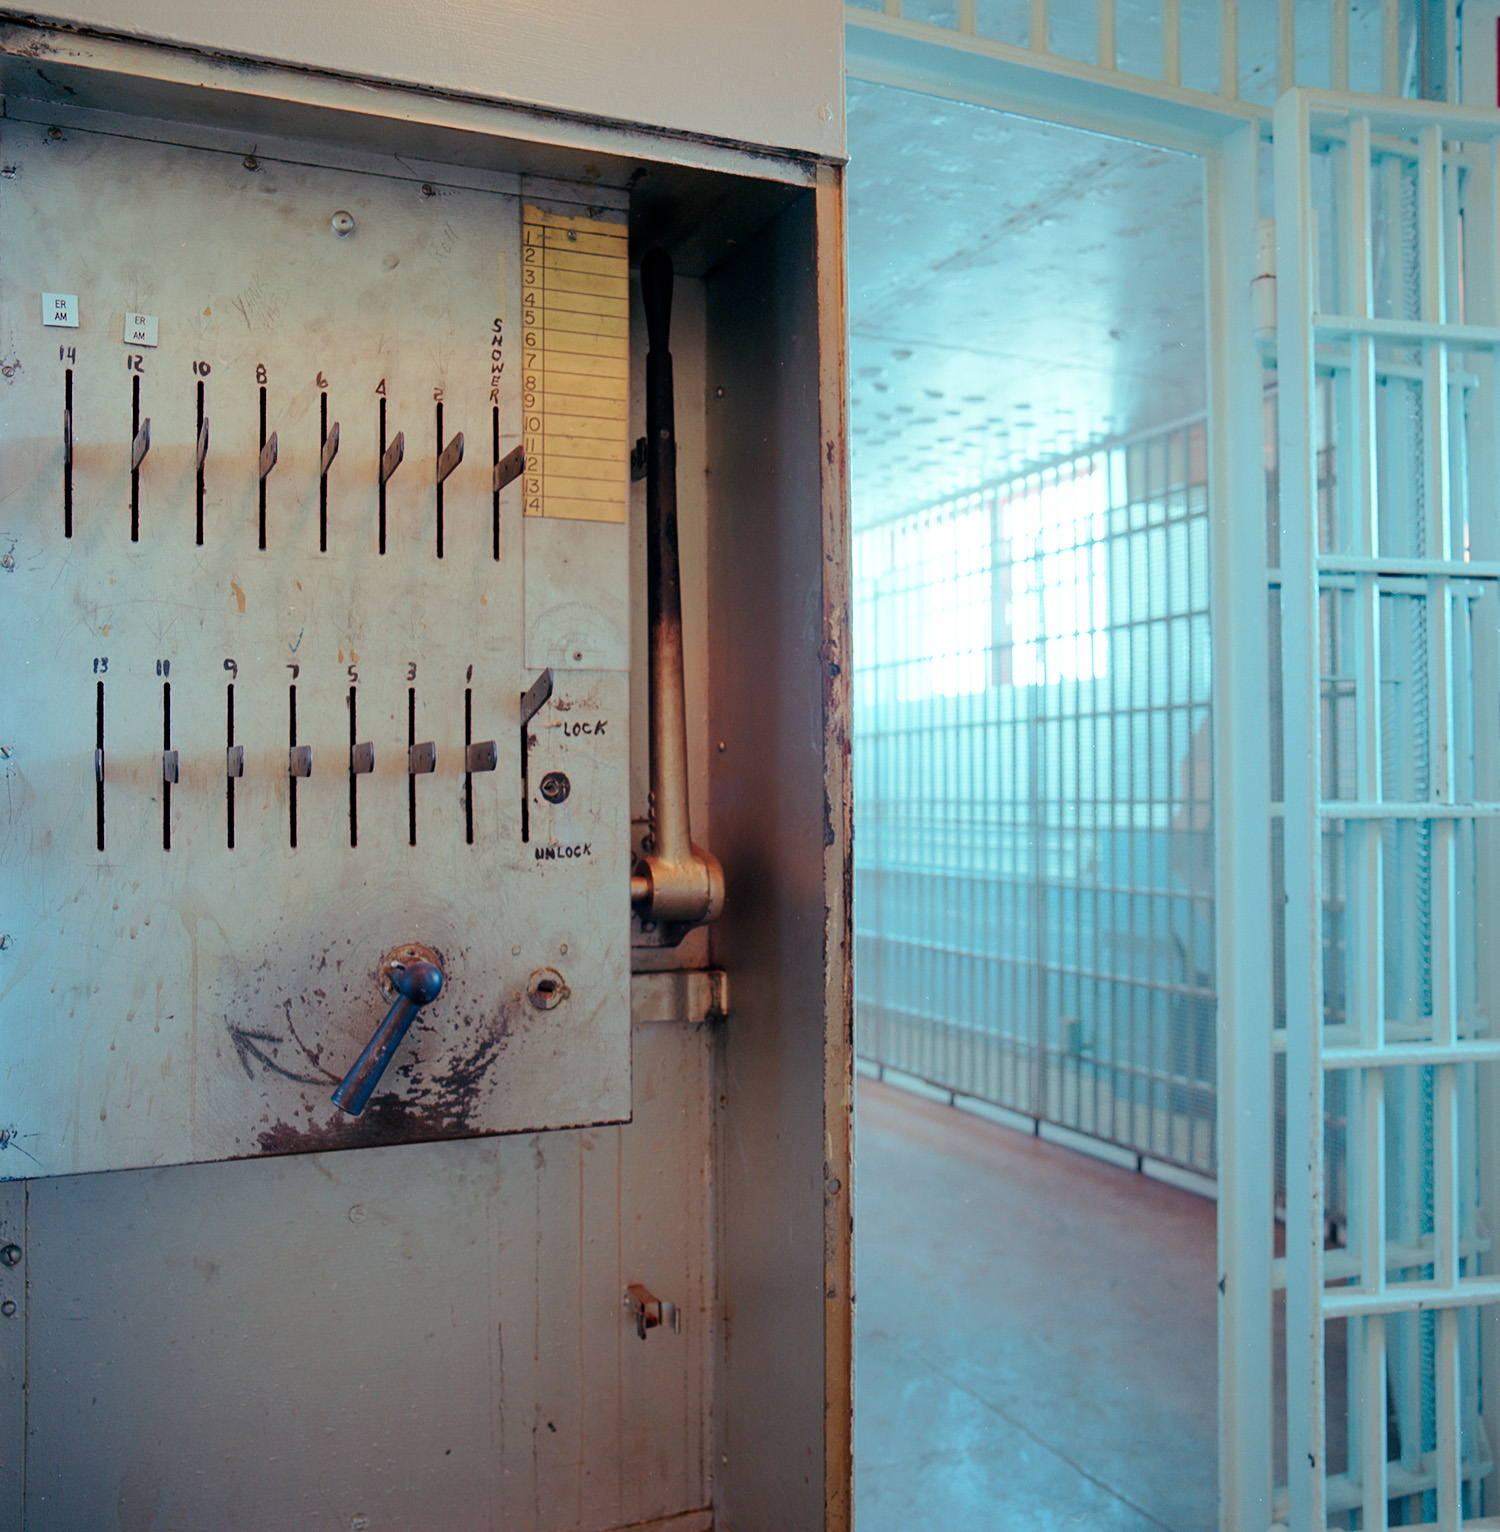 Untitled #441-03 from the series Maine State Prison, Thomaston